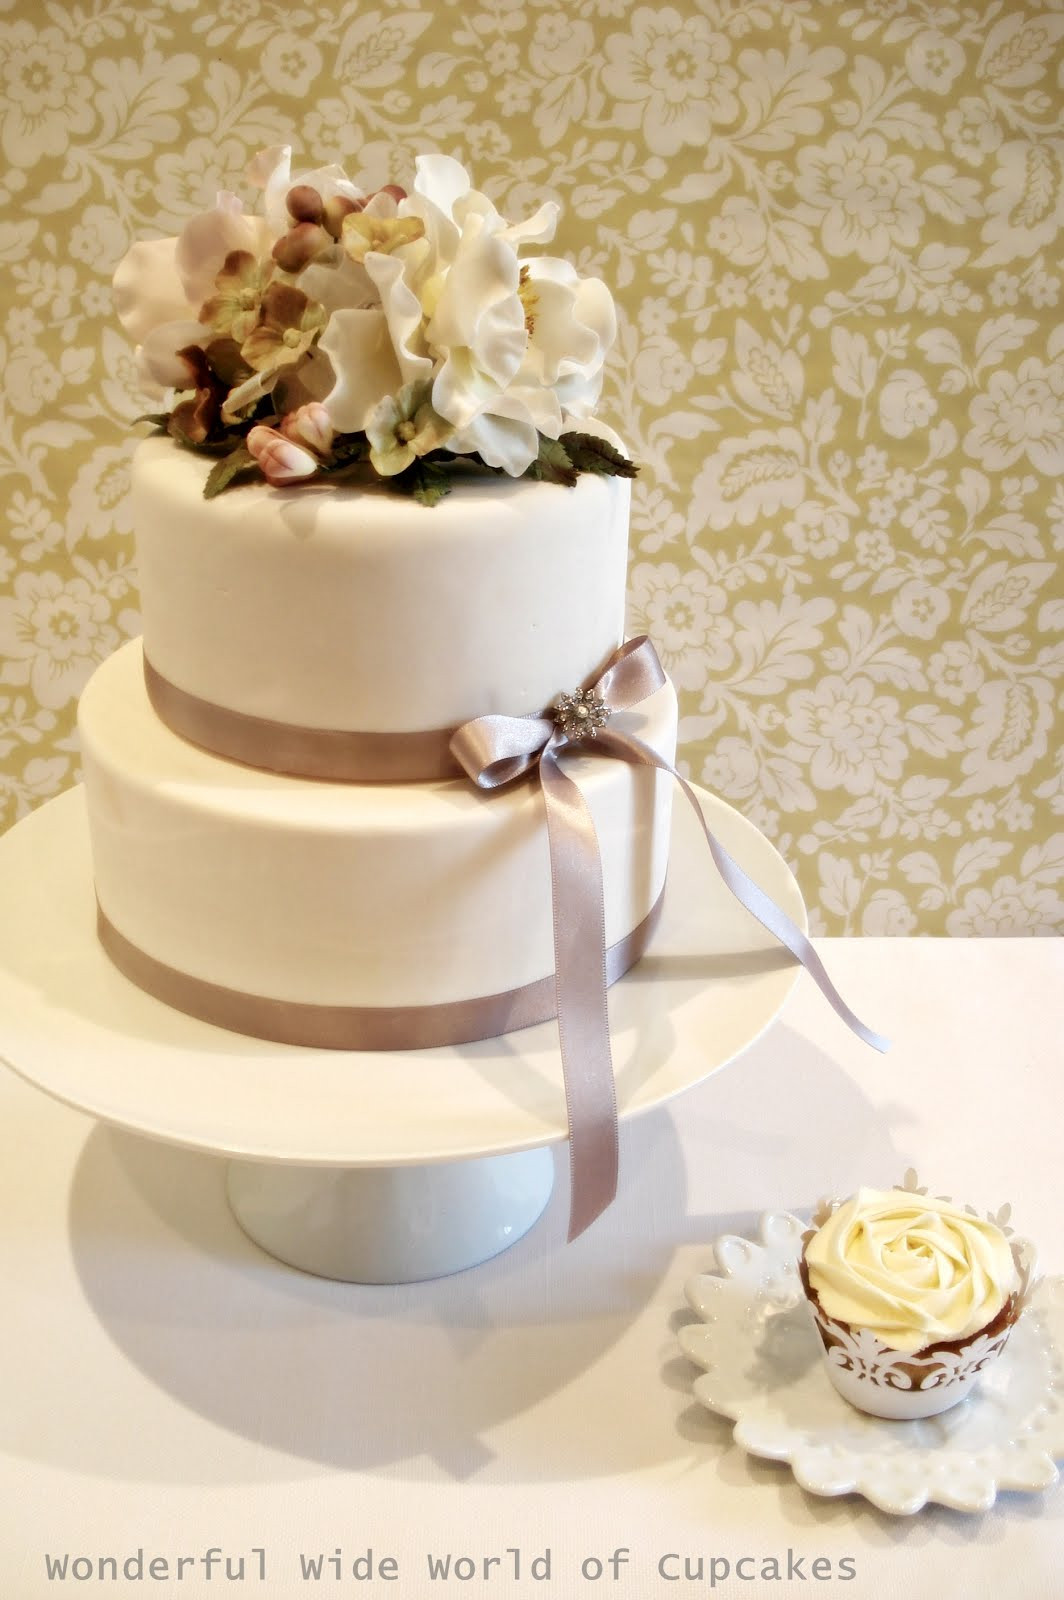 Simple Two Tier Wedding Cakes  Wonderful World of Cupcakes Need A Smaller Wedding Cake